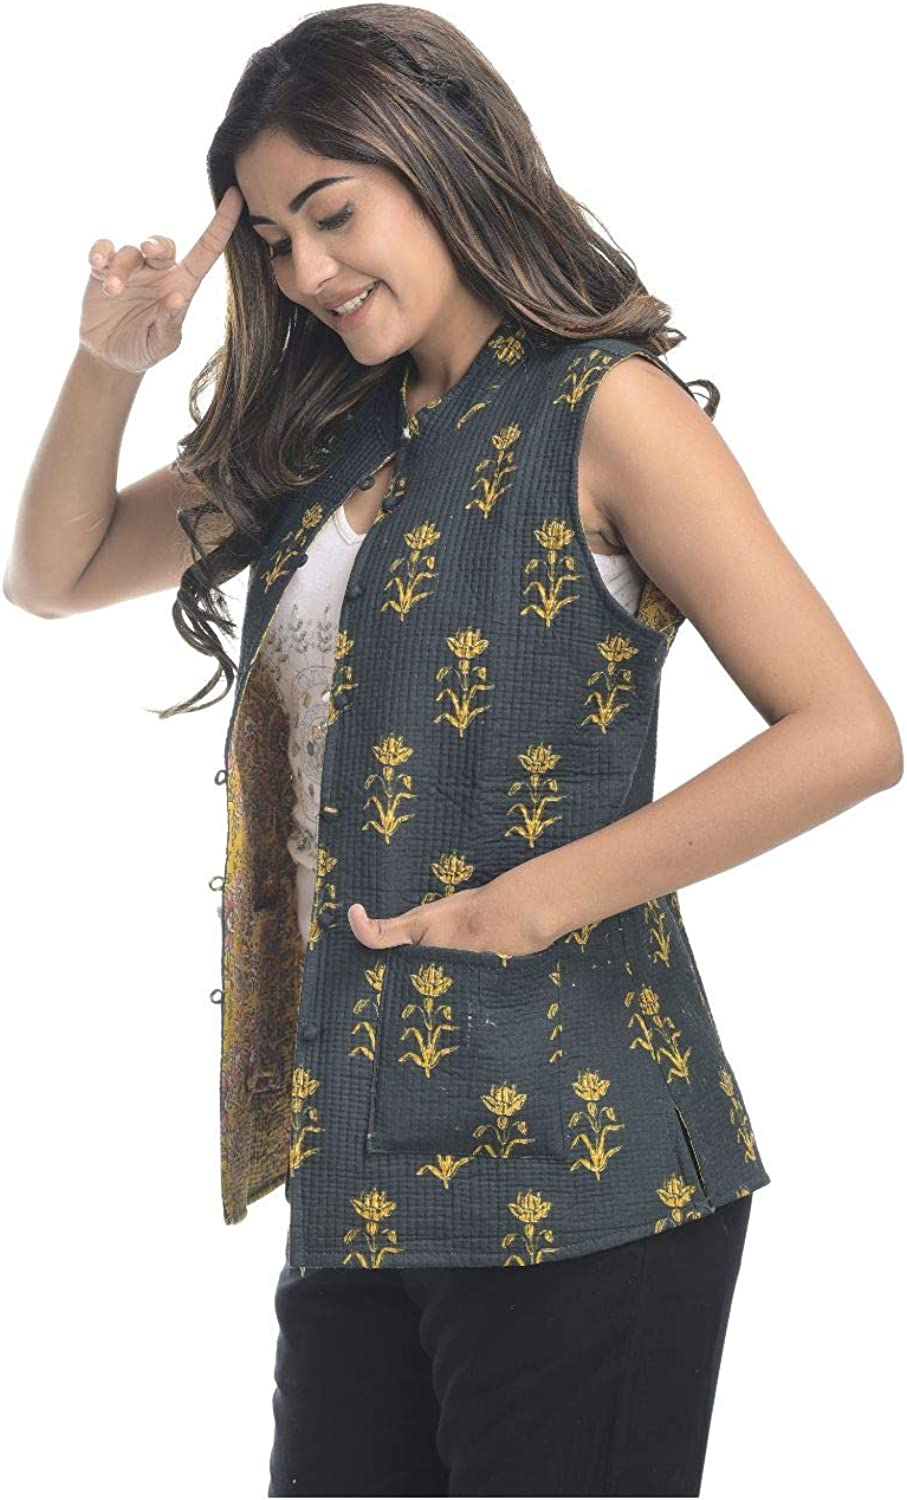 Apratim Cotton Women,Girl Party Wear/Wedding Quilted Reversible Jacket Black and Yellow Color